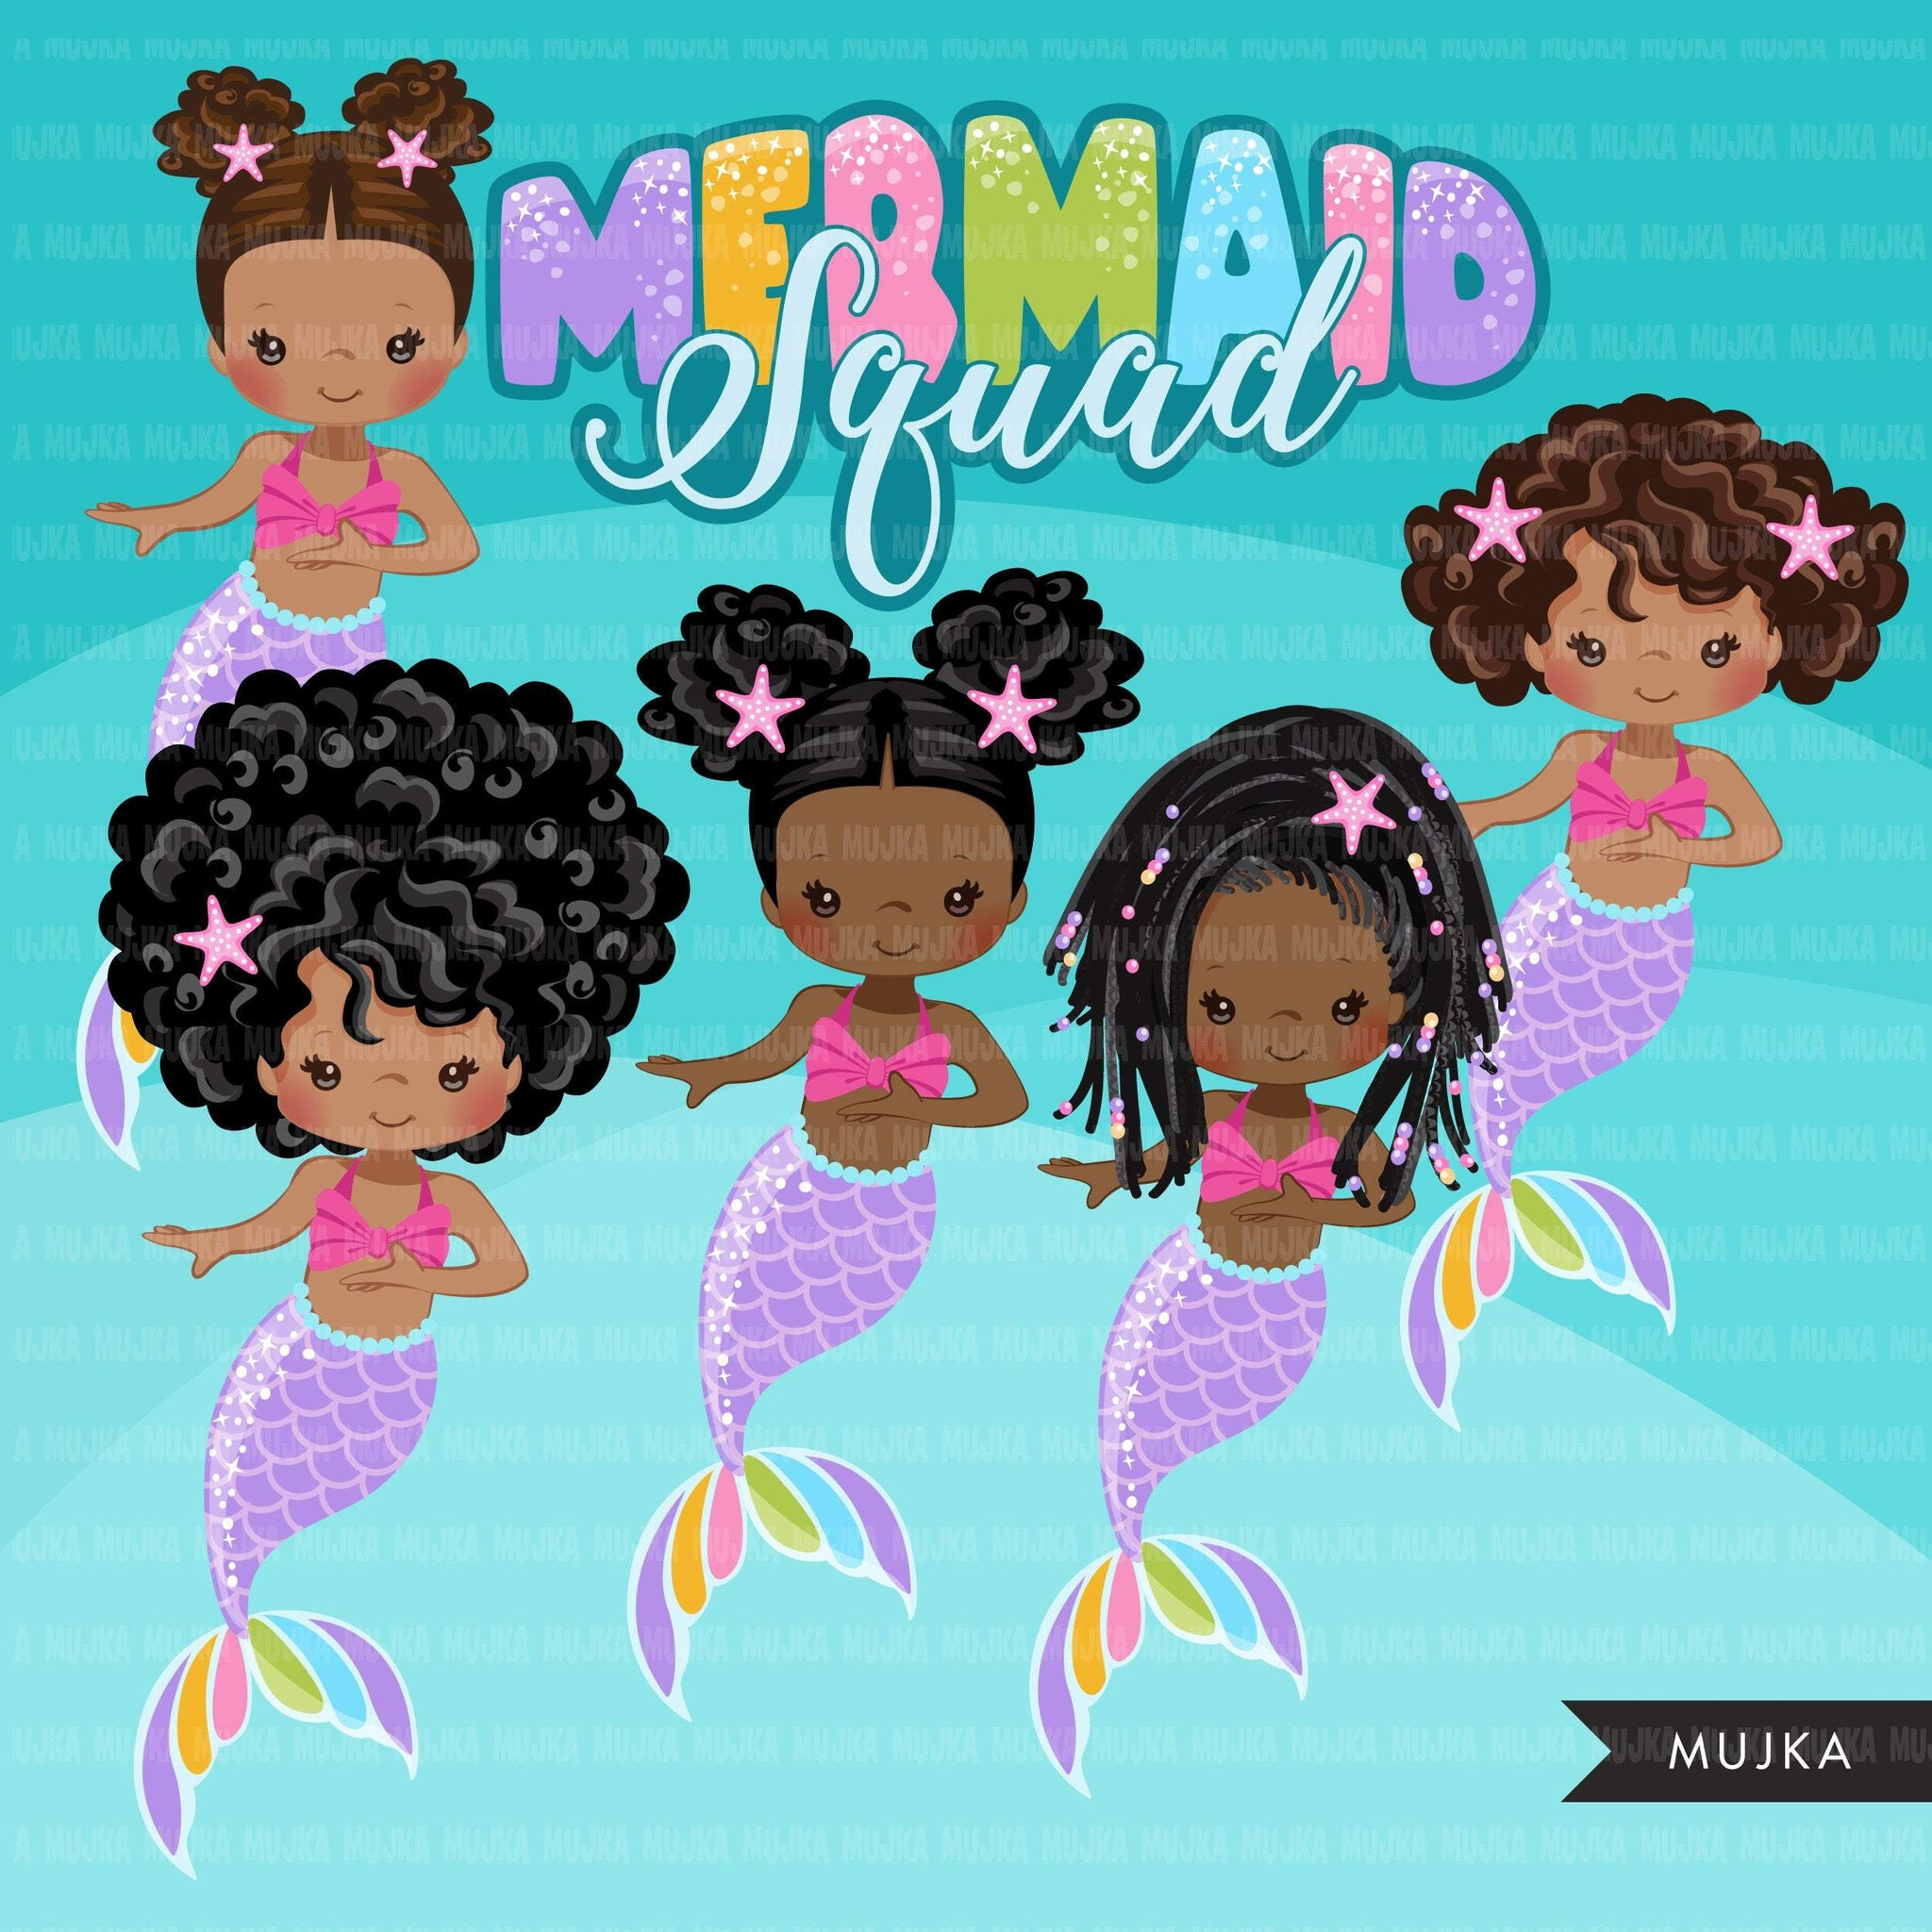 Mermaid clipart, rainbow mermaid graphics, black mermaid princess, mermaid squad birthday party, afro girl PNG clip art